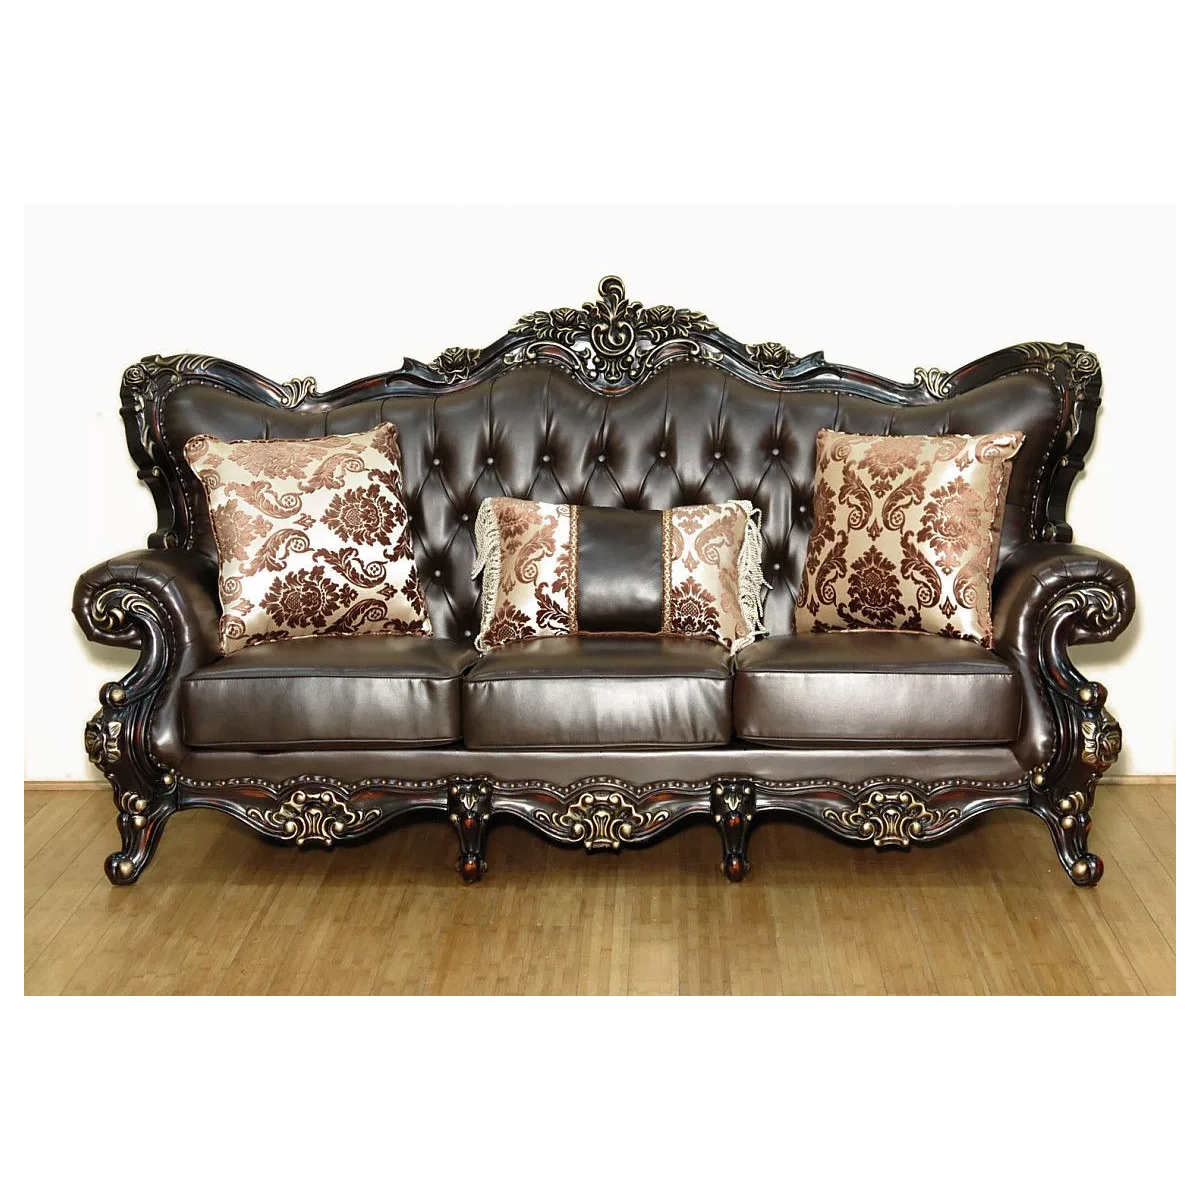 Meridian Furniture Barcelona Tufted Brown Leather Sofa On Rich Cherry Frame W Ornate Carving